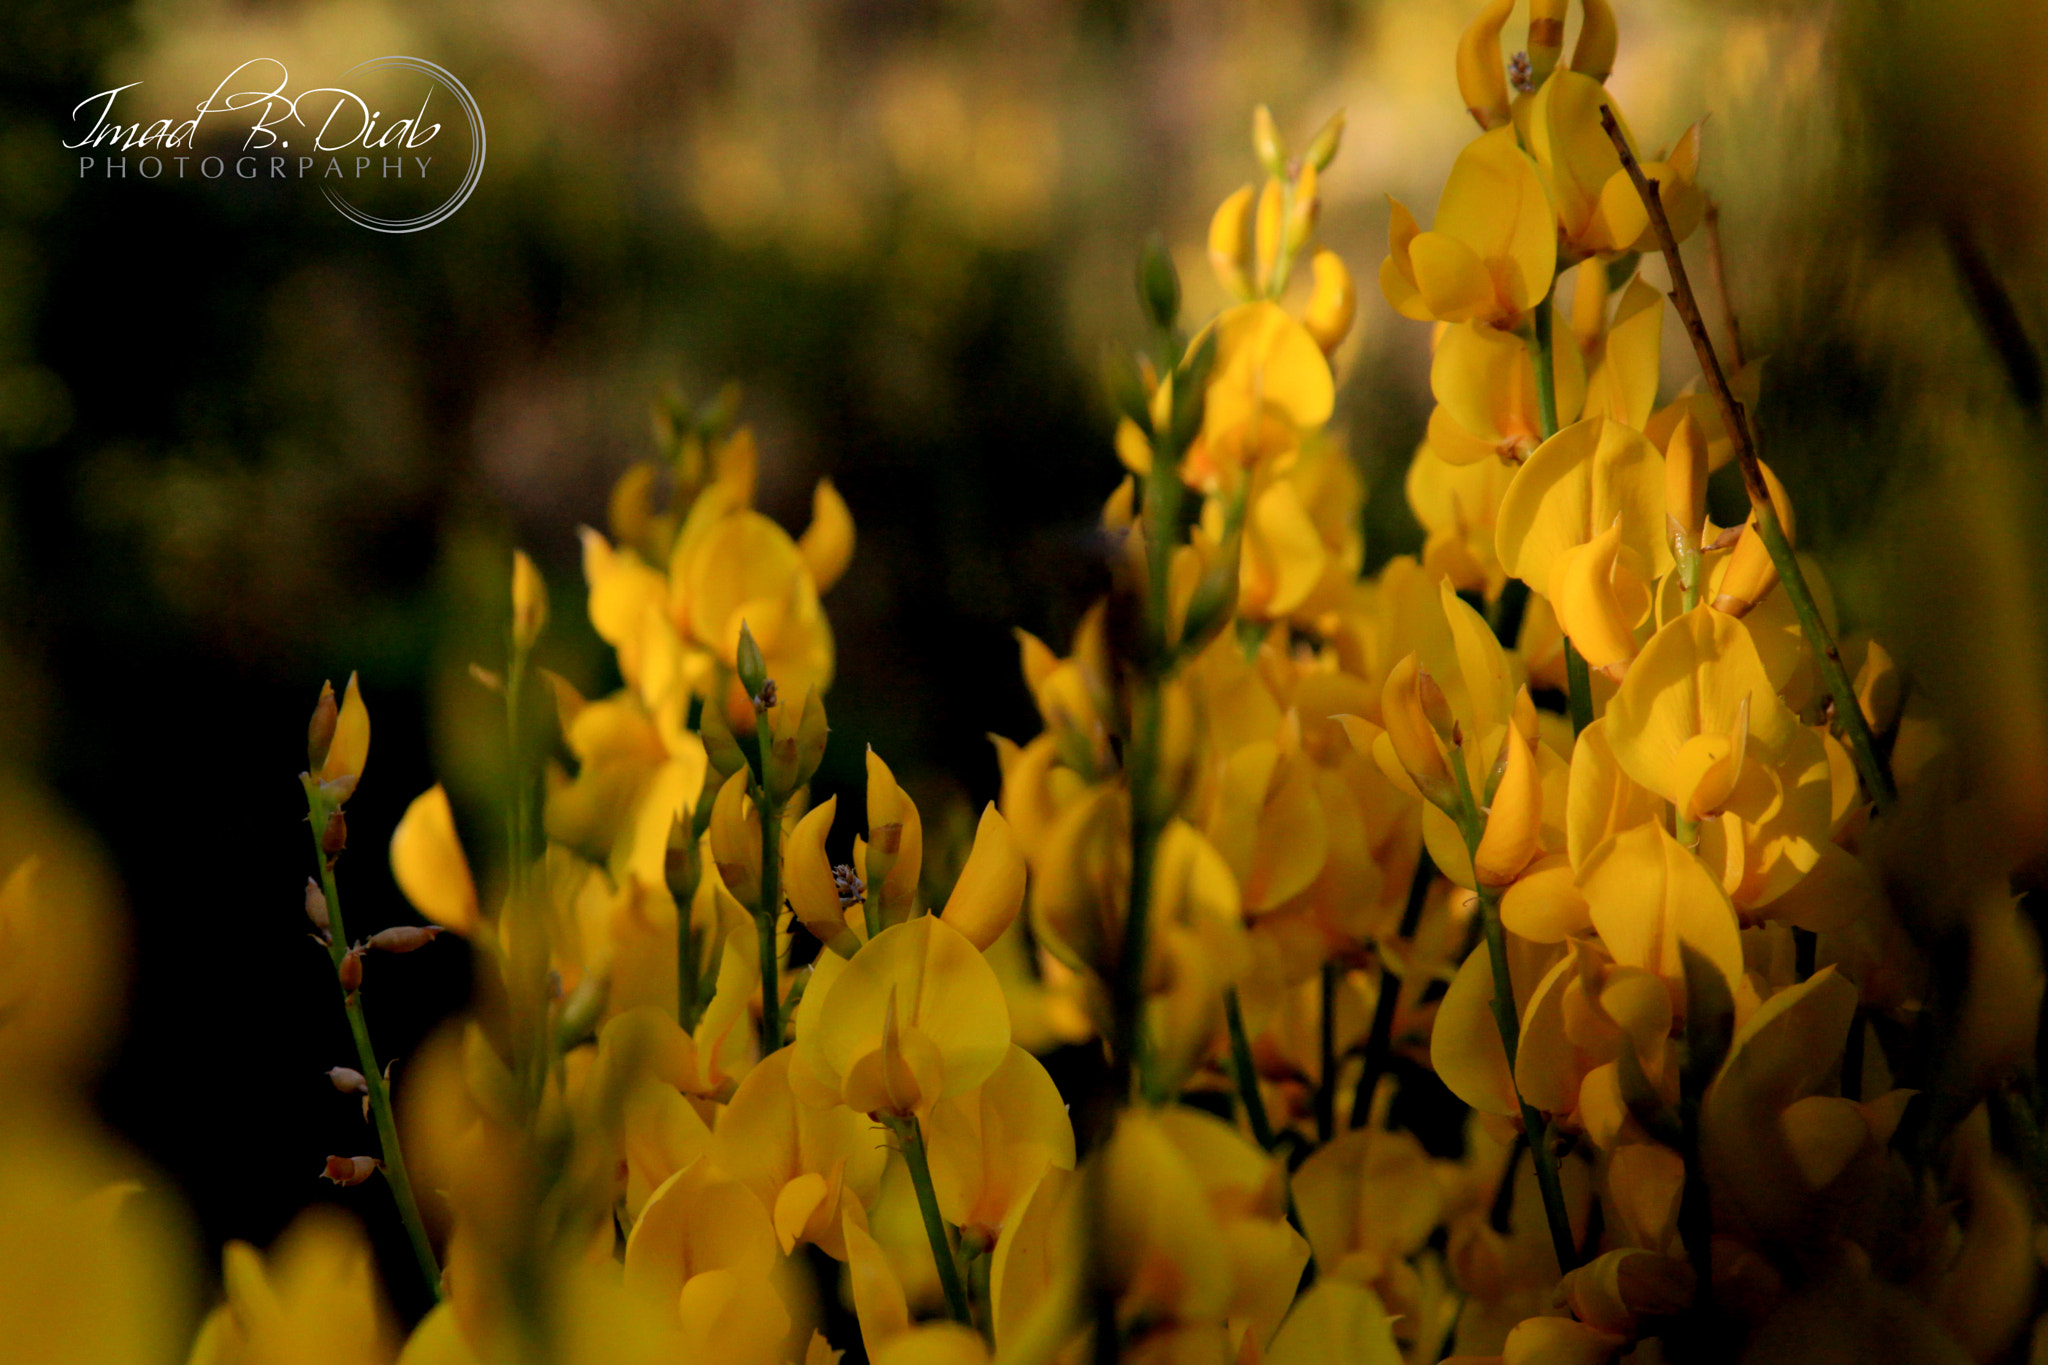 Photograph Joy of Yellow by Imad B.Diab on 500px